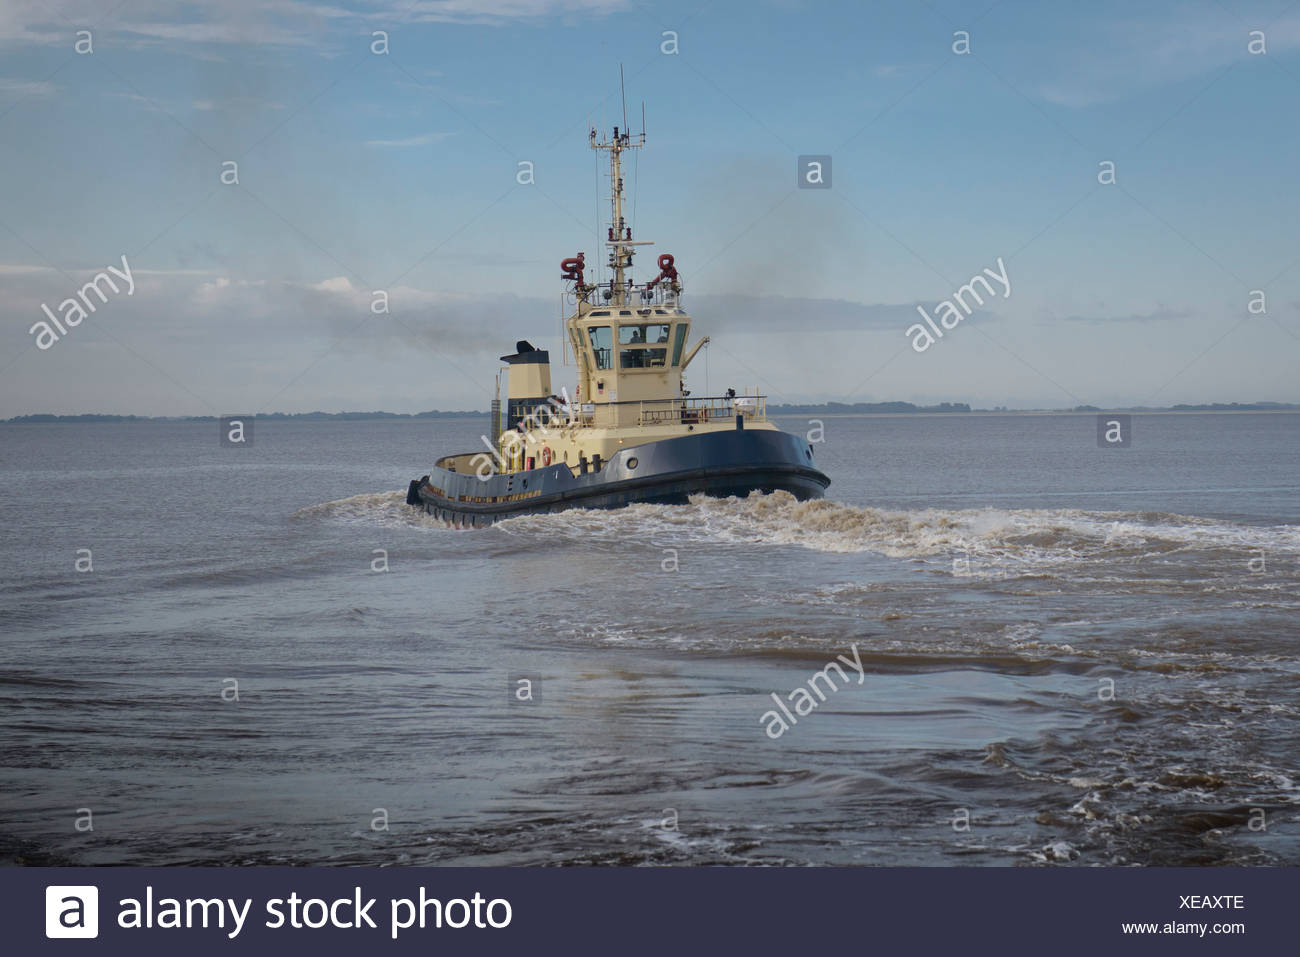 Tugboat sailing in water - Stock Image